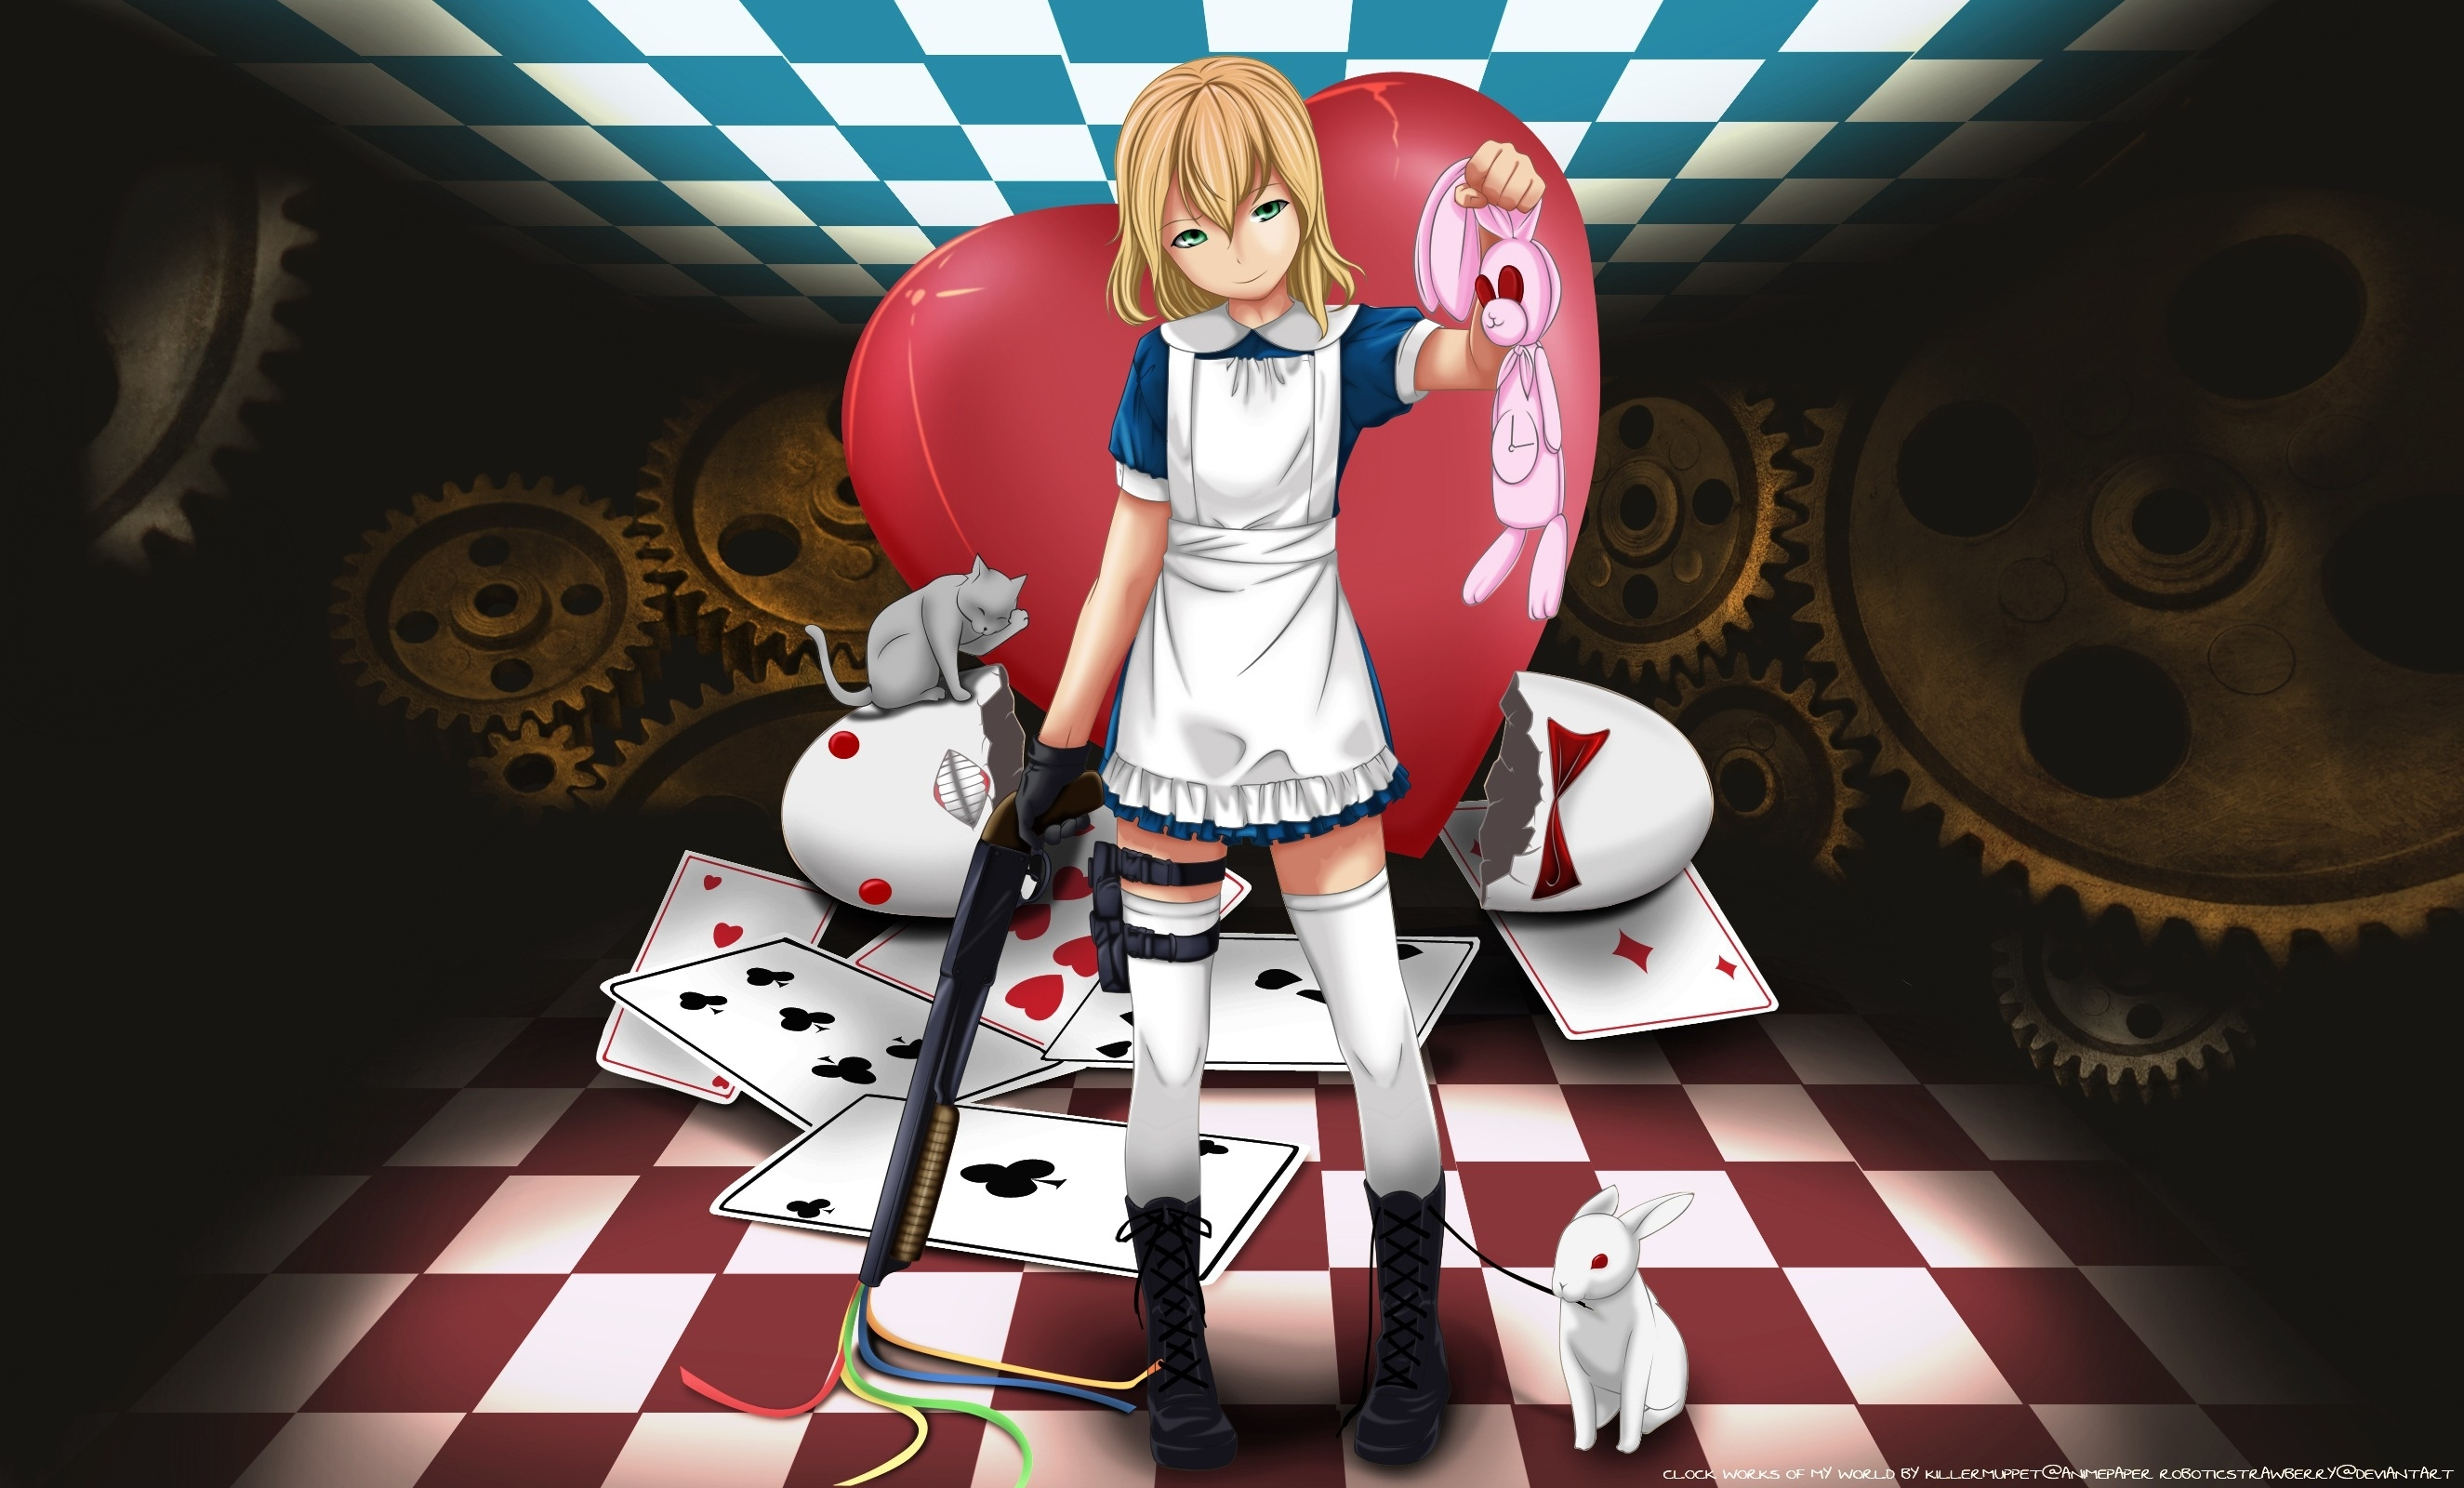 Alice in wonderland, alice (alice in wonderland), white rabbit, rabbit